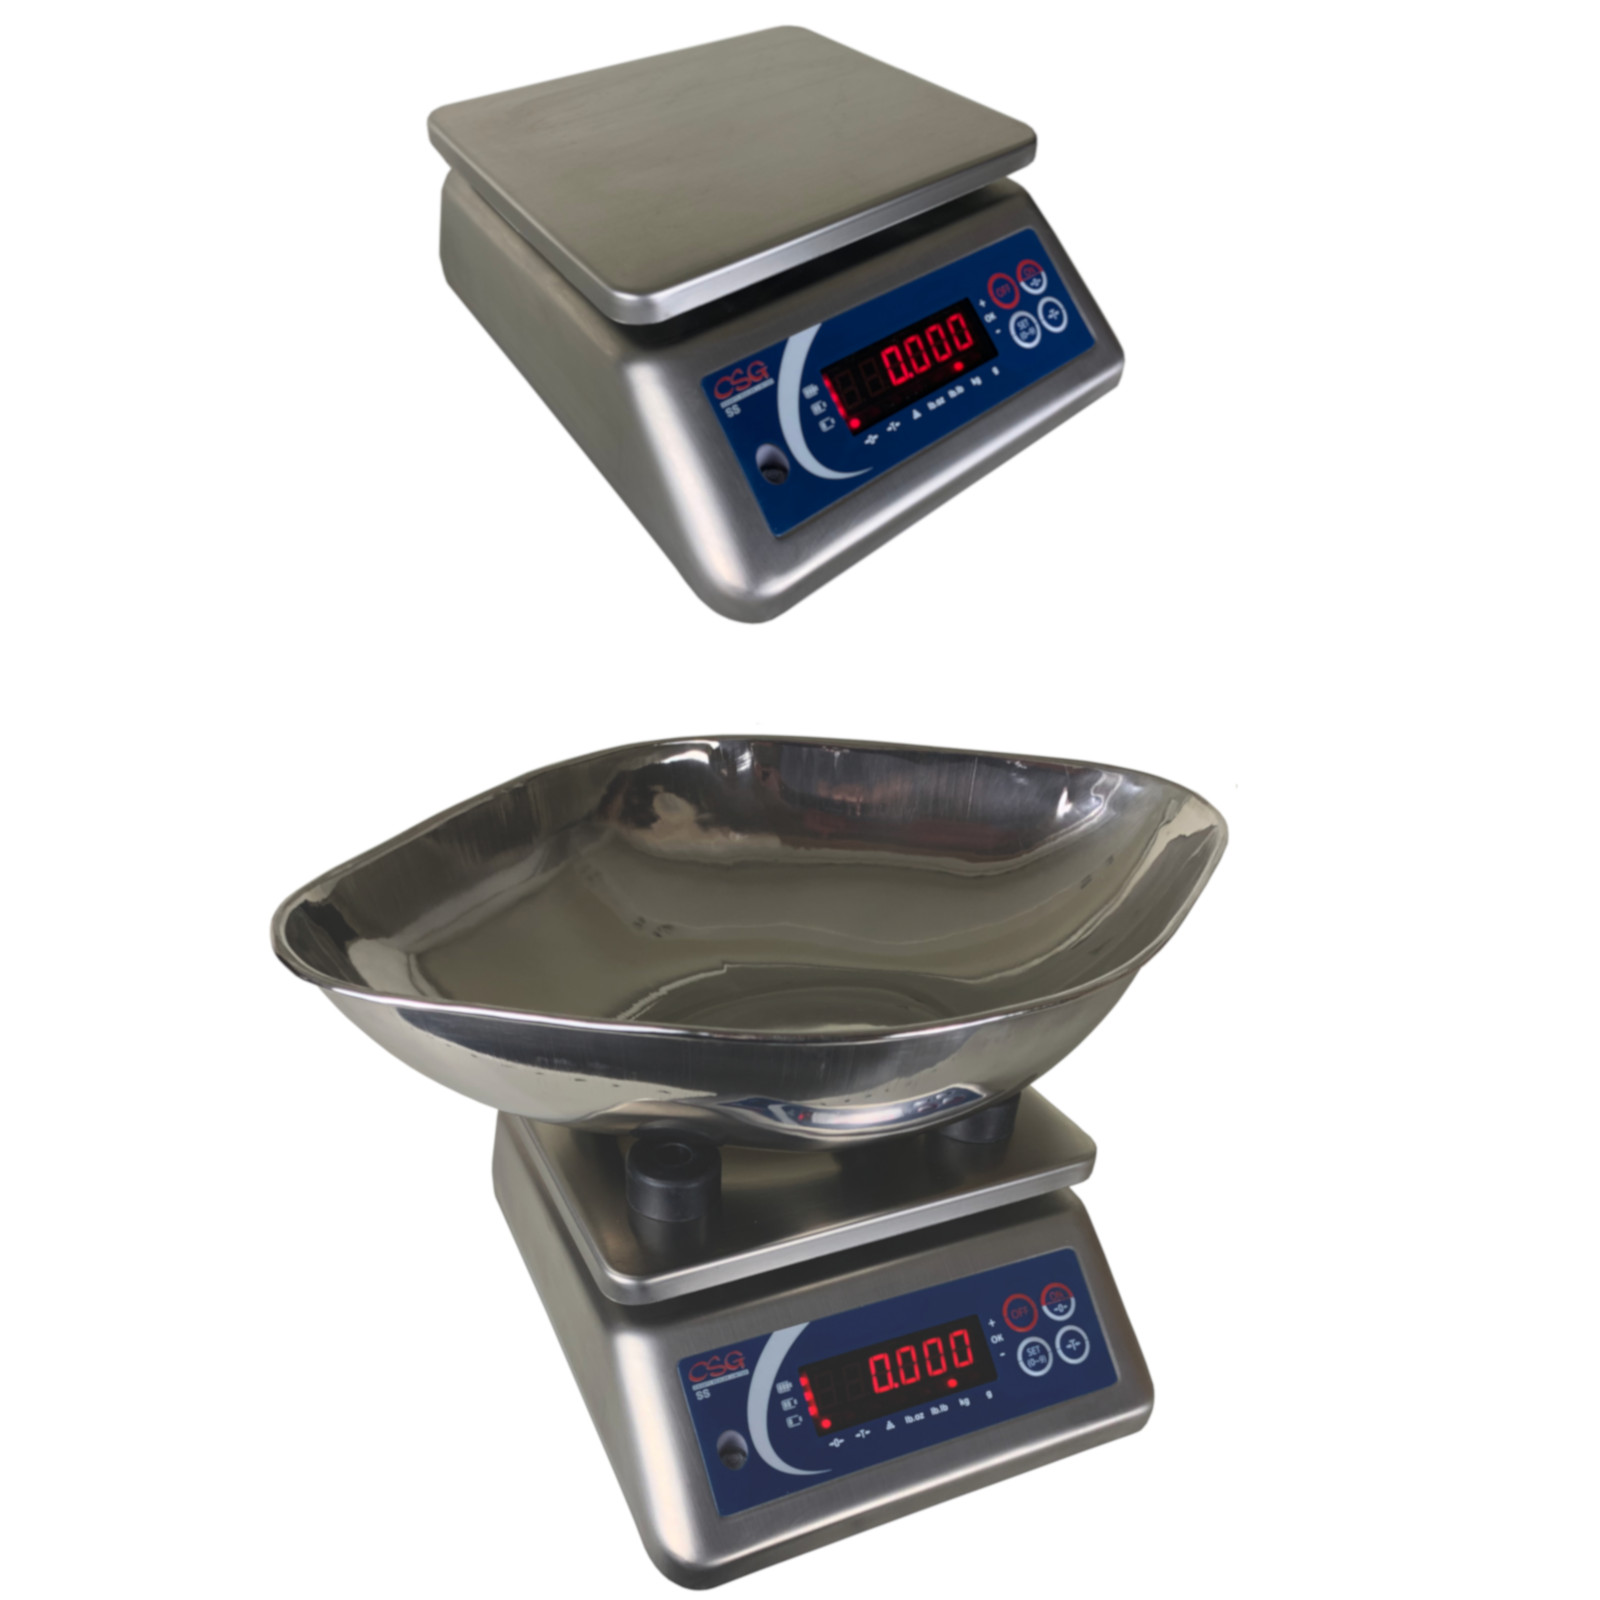 Industrial Food Scales from weighingscales.com